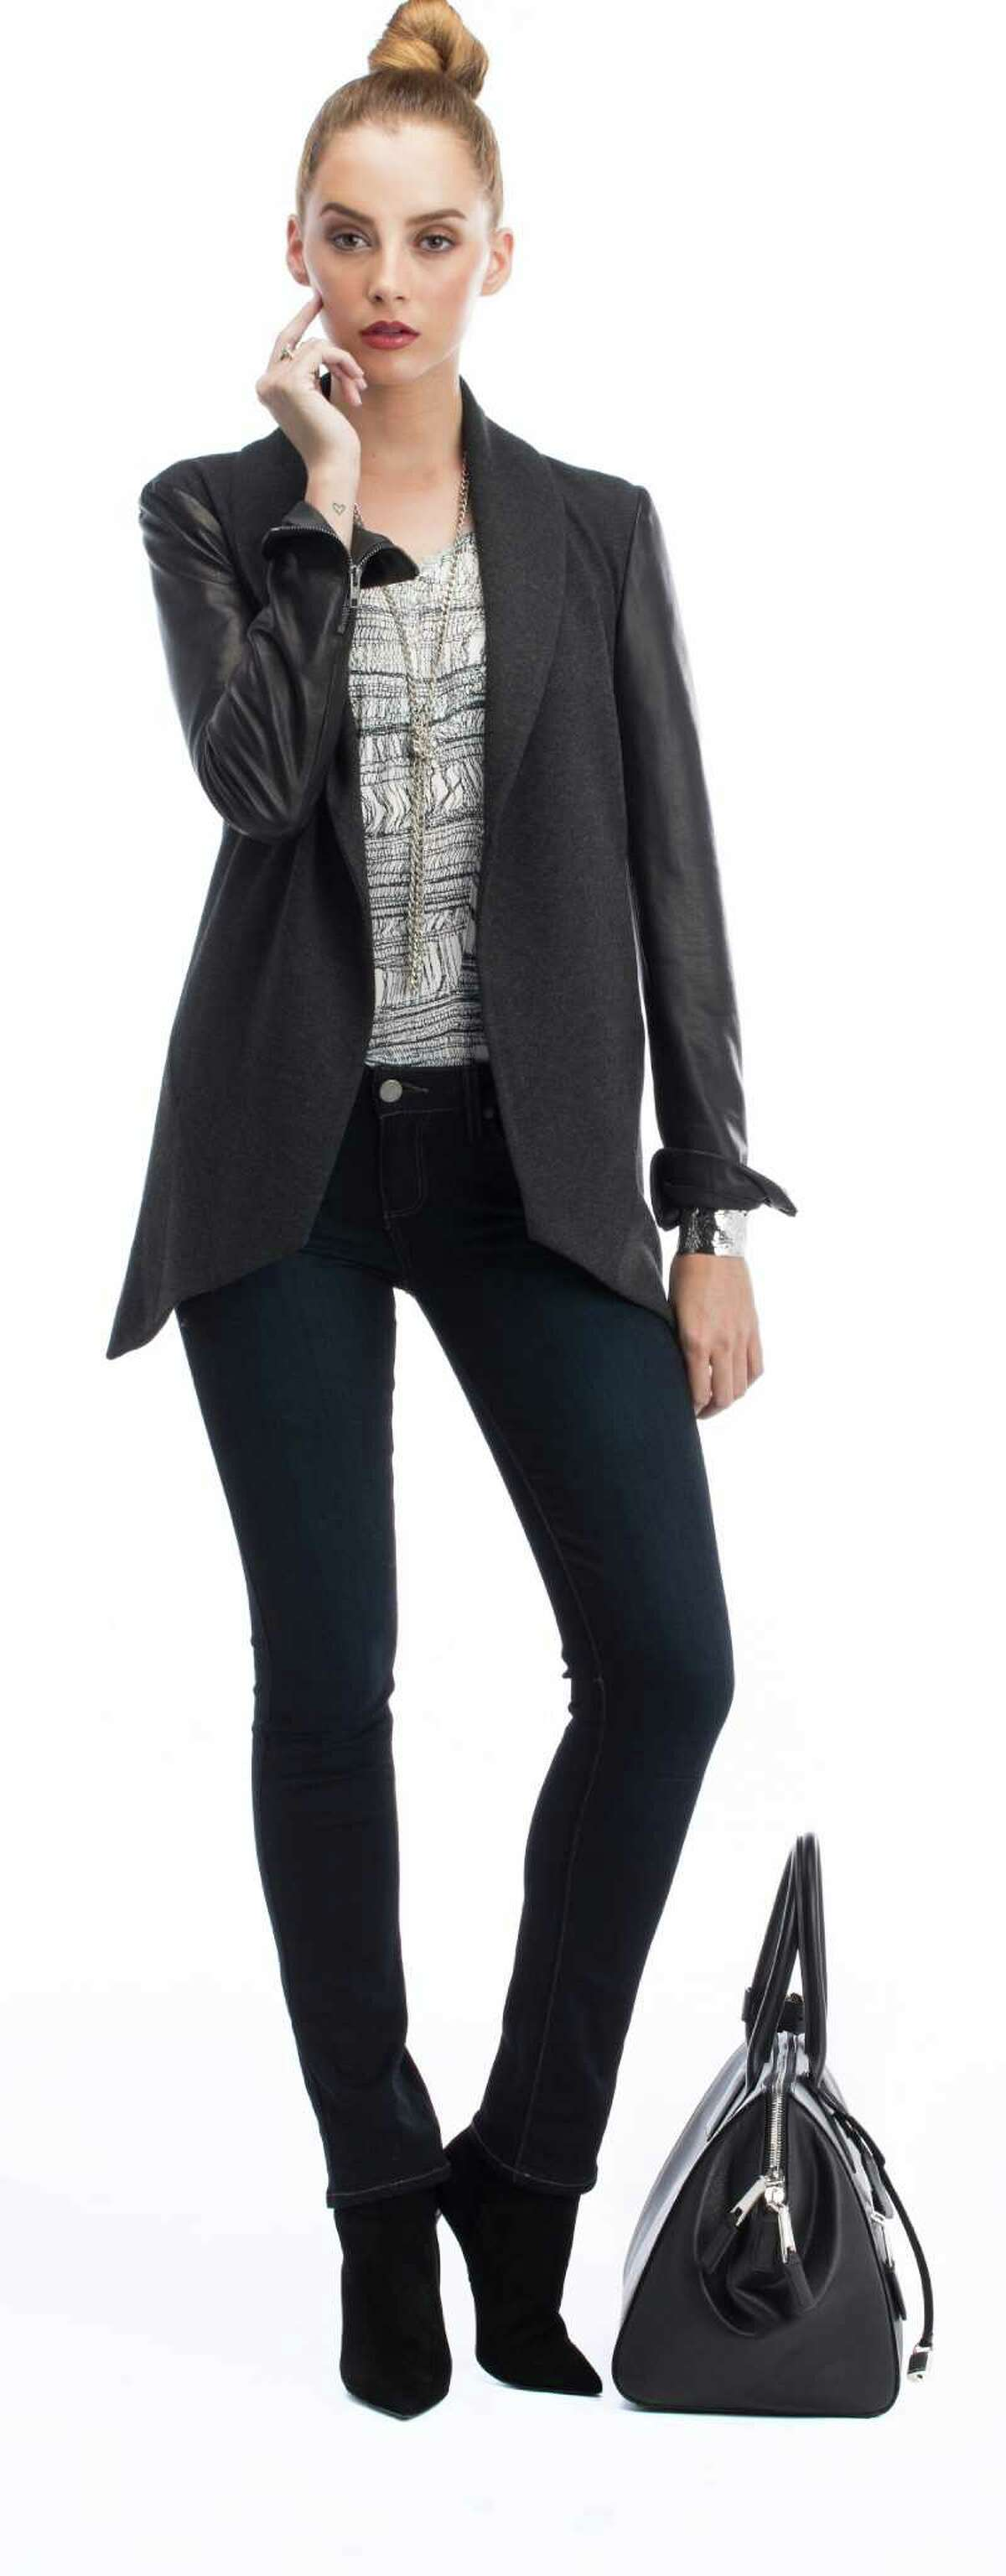 FiDi FRIDAY Go beyond the basic blazer: This marbled silk T-shirt reads like a blouse when tucked in, says Rooney. The jacket, with its charcoal knit shawl collar and leather sleeves, gives the look a slight edge. Theory Laura blazer in Dark Charcoal, $615; Saint Laurent Paris bootie, $895; Marc Jacobs medium Incognito leather satchel in black nickel, $2,300; www.nordstrom.com. Raquel Allegra Shred Print blouse, $240, Crimson Mim, 322 Main St., Los Altos, www.crimsonmim.com. Sweet & Spark vintage silver chain, $68, www.sweetandspark.com. Svelte Metals Medina cuff, $175, and Findley ring, $135, www.sveltemetals.com. Stylist: Caroline Rooney; Hair and Makeup: Erika Taniguchi / BeautybyErika.com; Model: Hanna / Scout